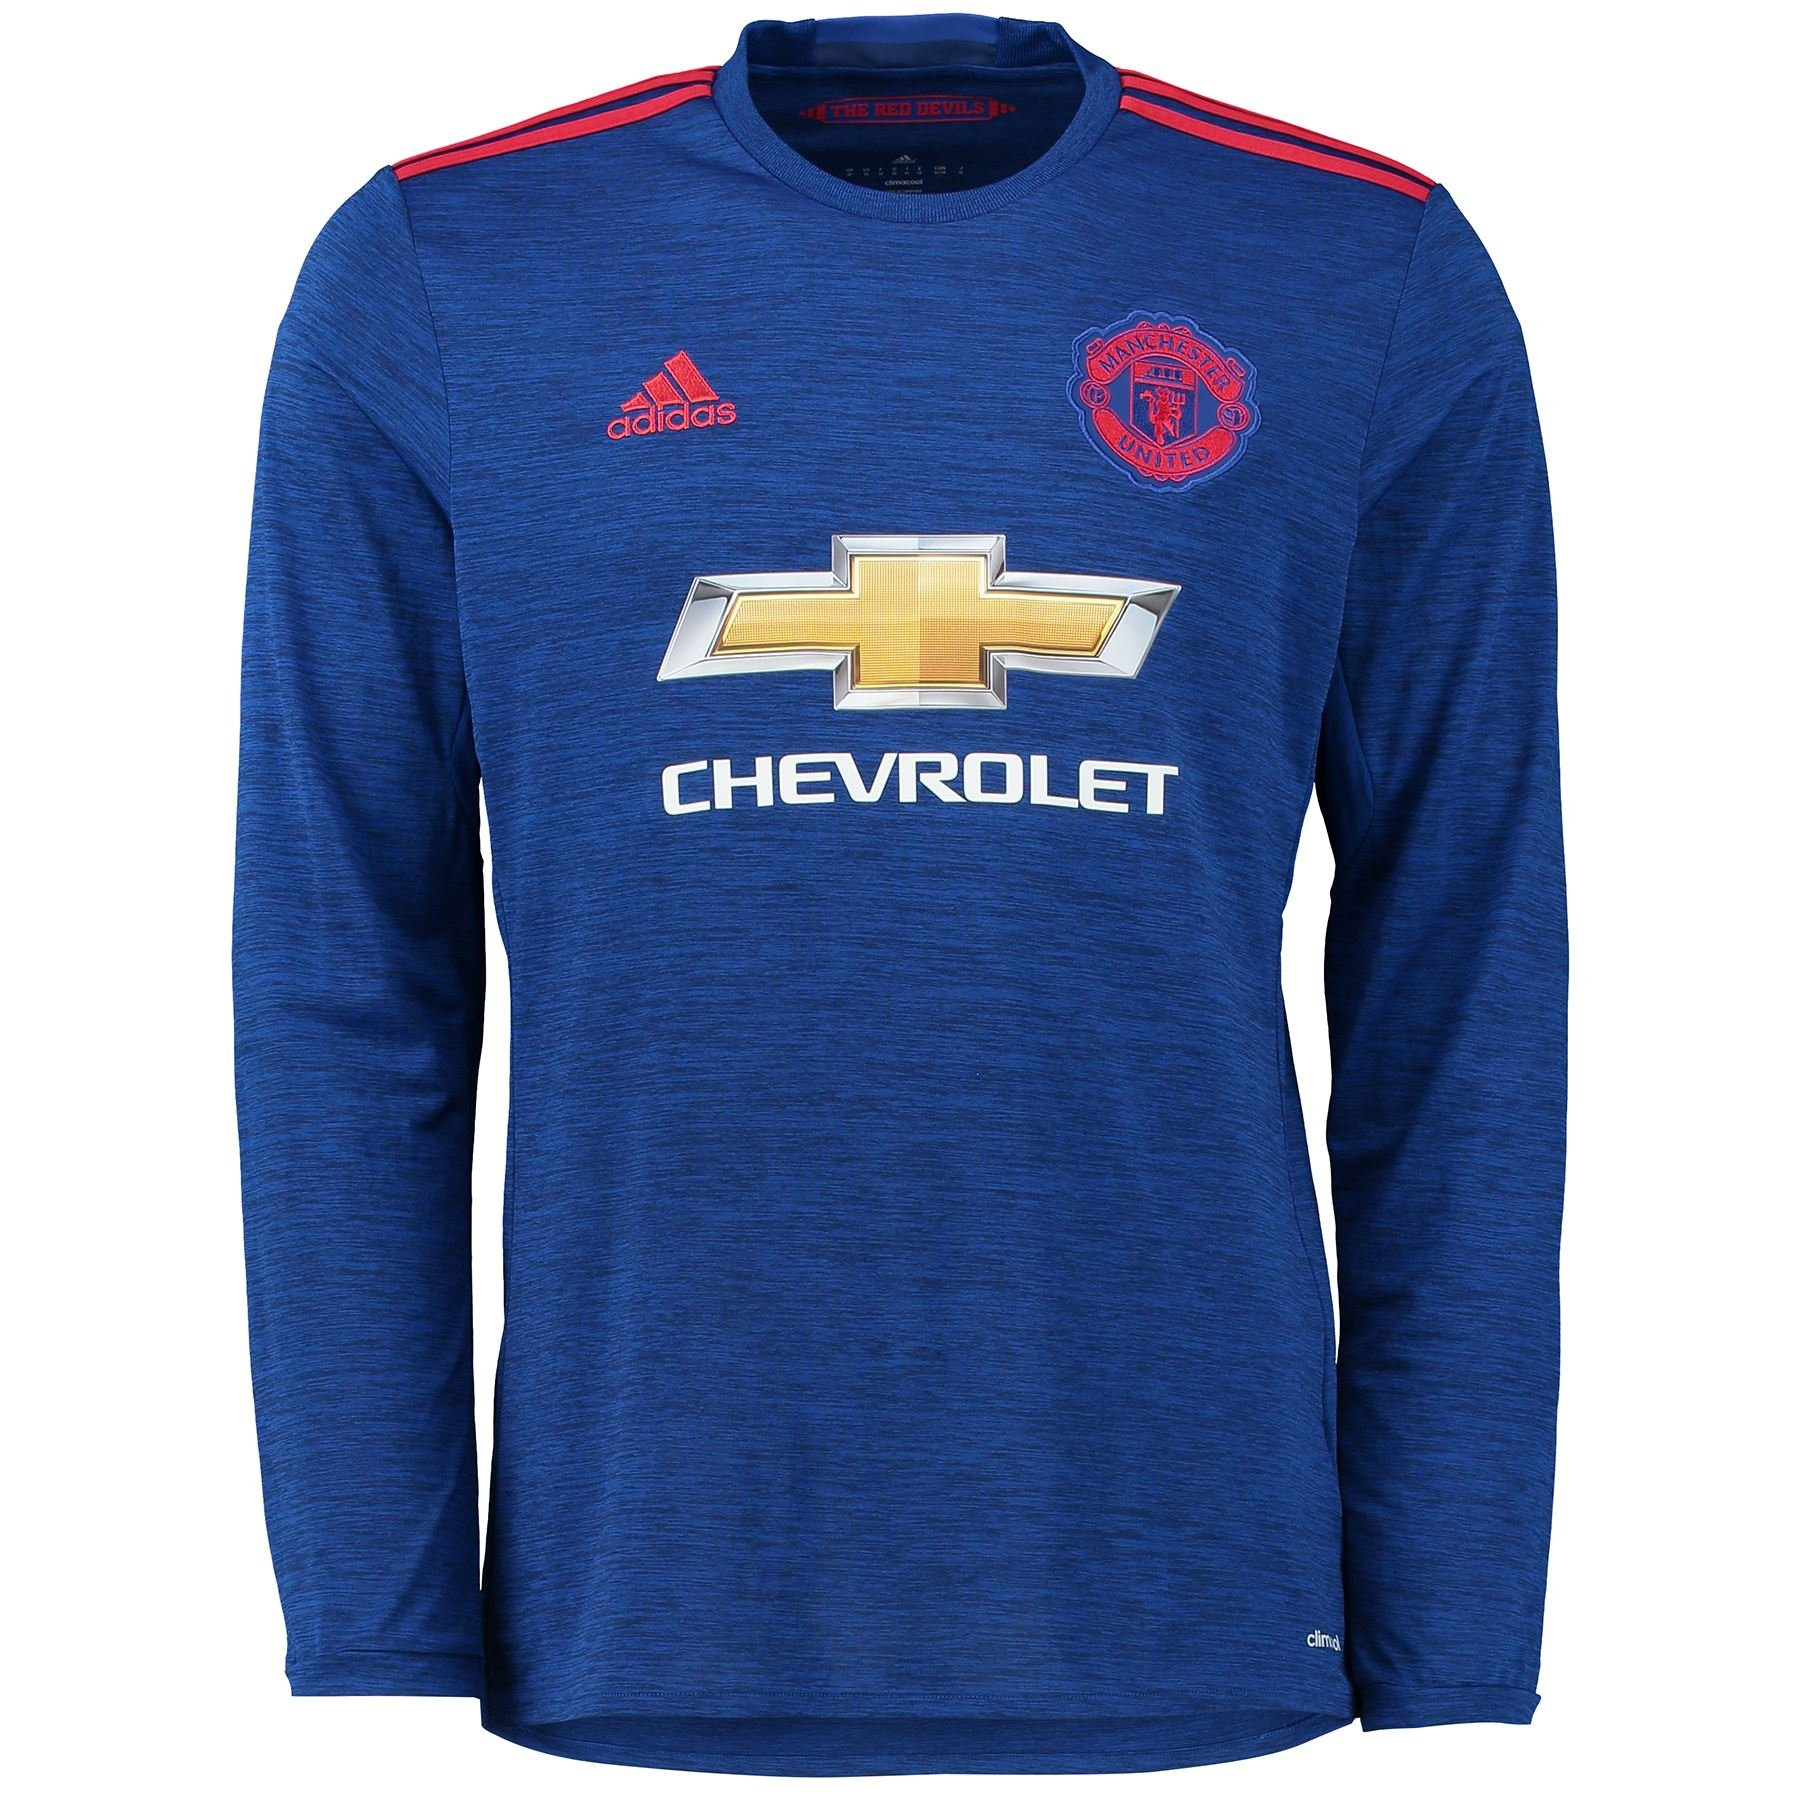 new arrival c50e5 50acb adidas MUFC A JSY L - 2nd football kit T-Shirt for of Manchester United  2015/16 for Men